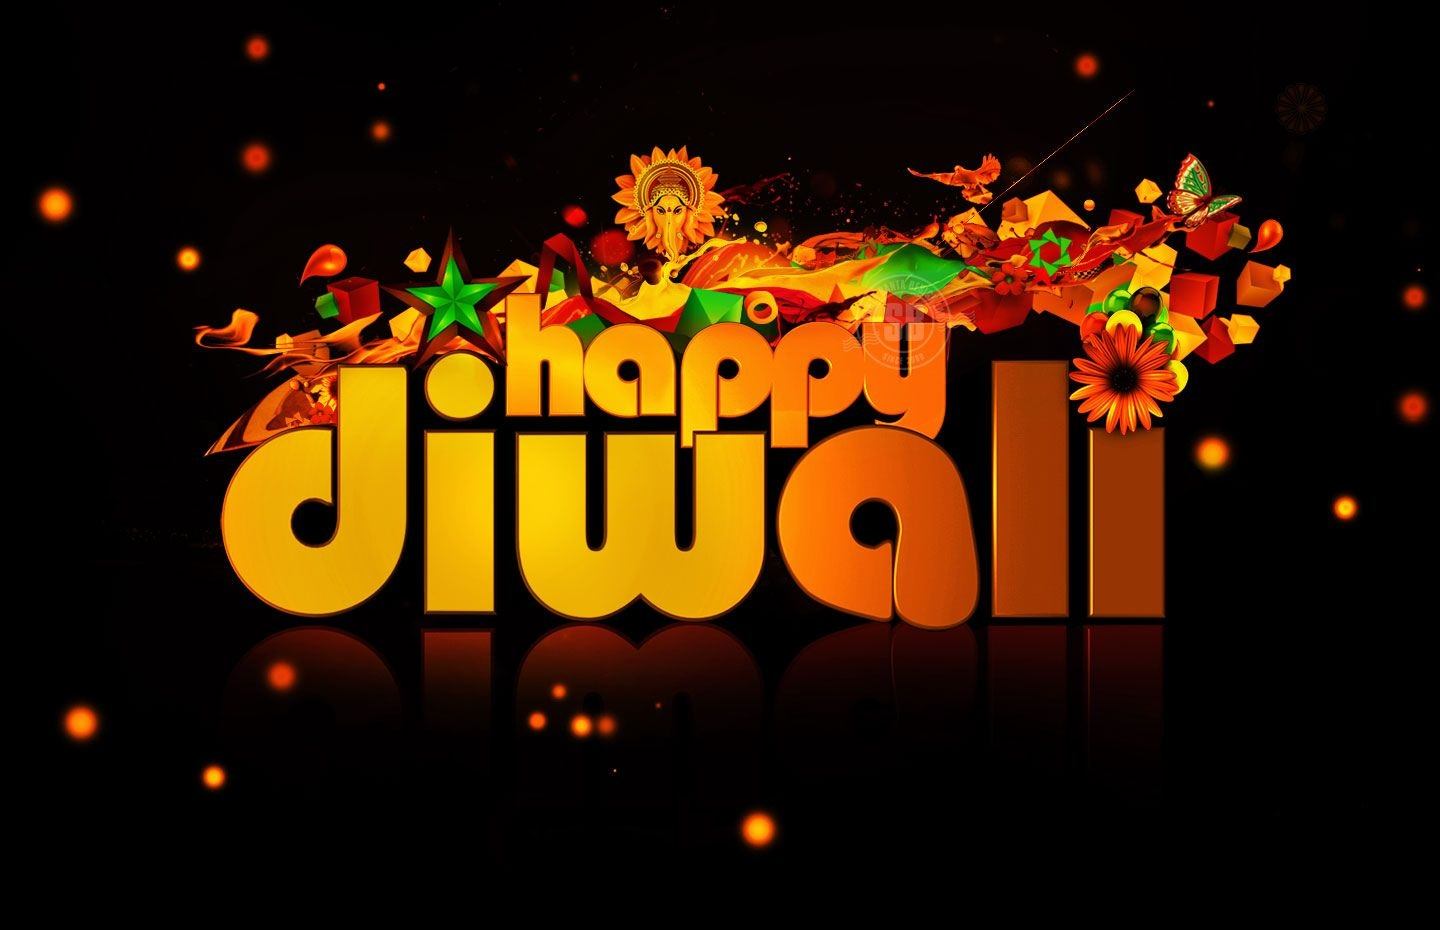 Desktop Wallpapers 1080p: Diwali Wallpapers